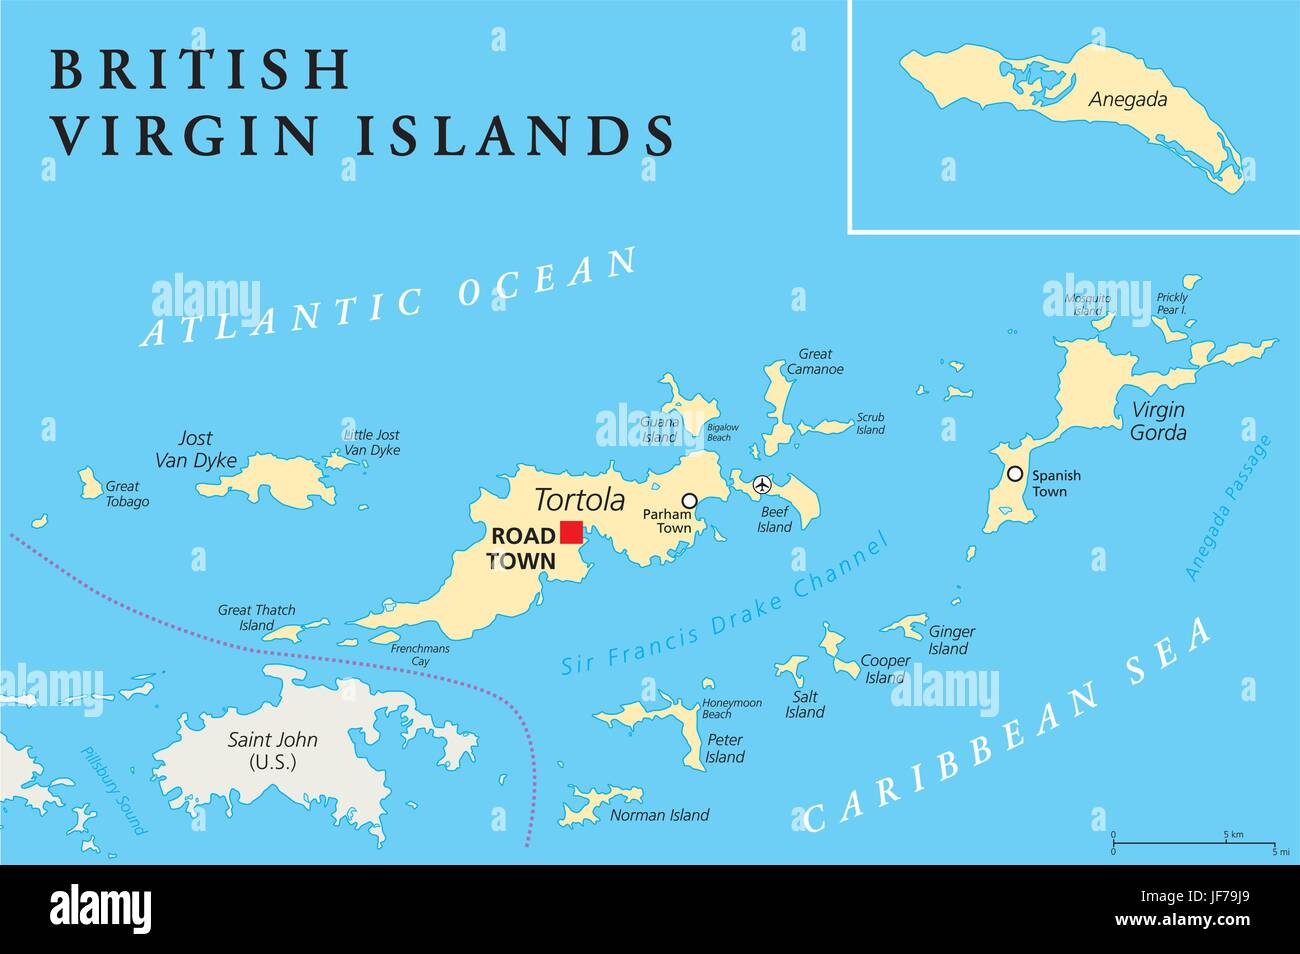 The Bottom British Virgin Island